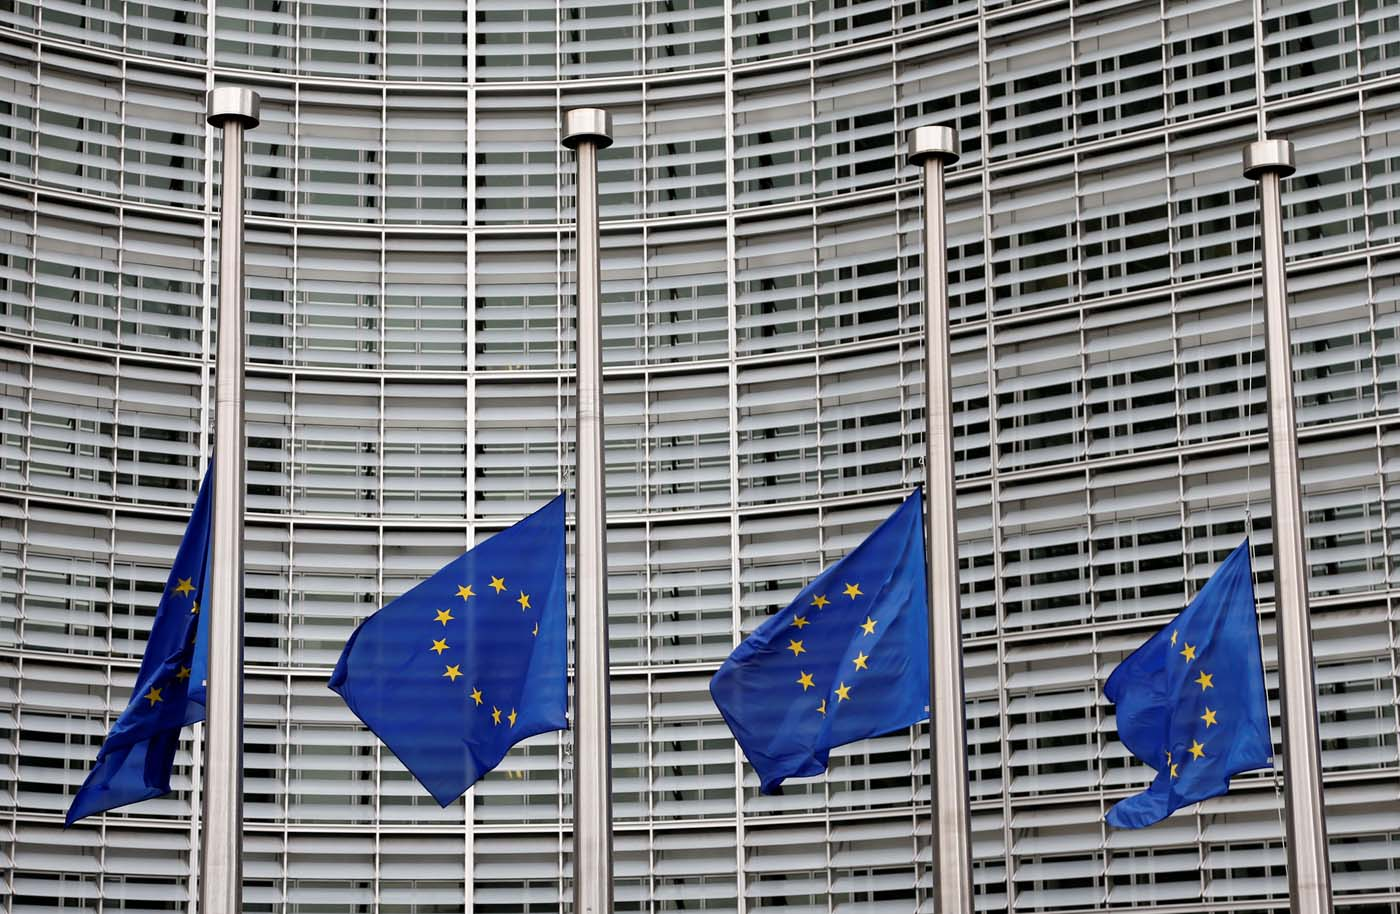 European Union flags are lowered at half-mast in honor of the victims of the Barcelona attack, outside the European Commission headquarters in Brussels, Belgium August 18, 2017. REUTERS/Francois Lenoir